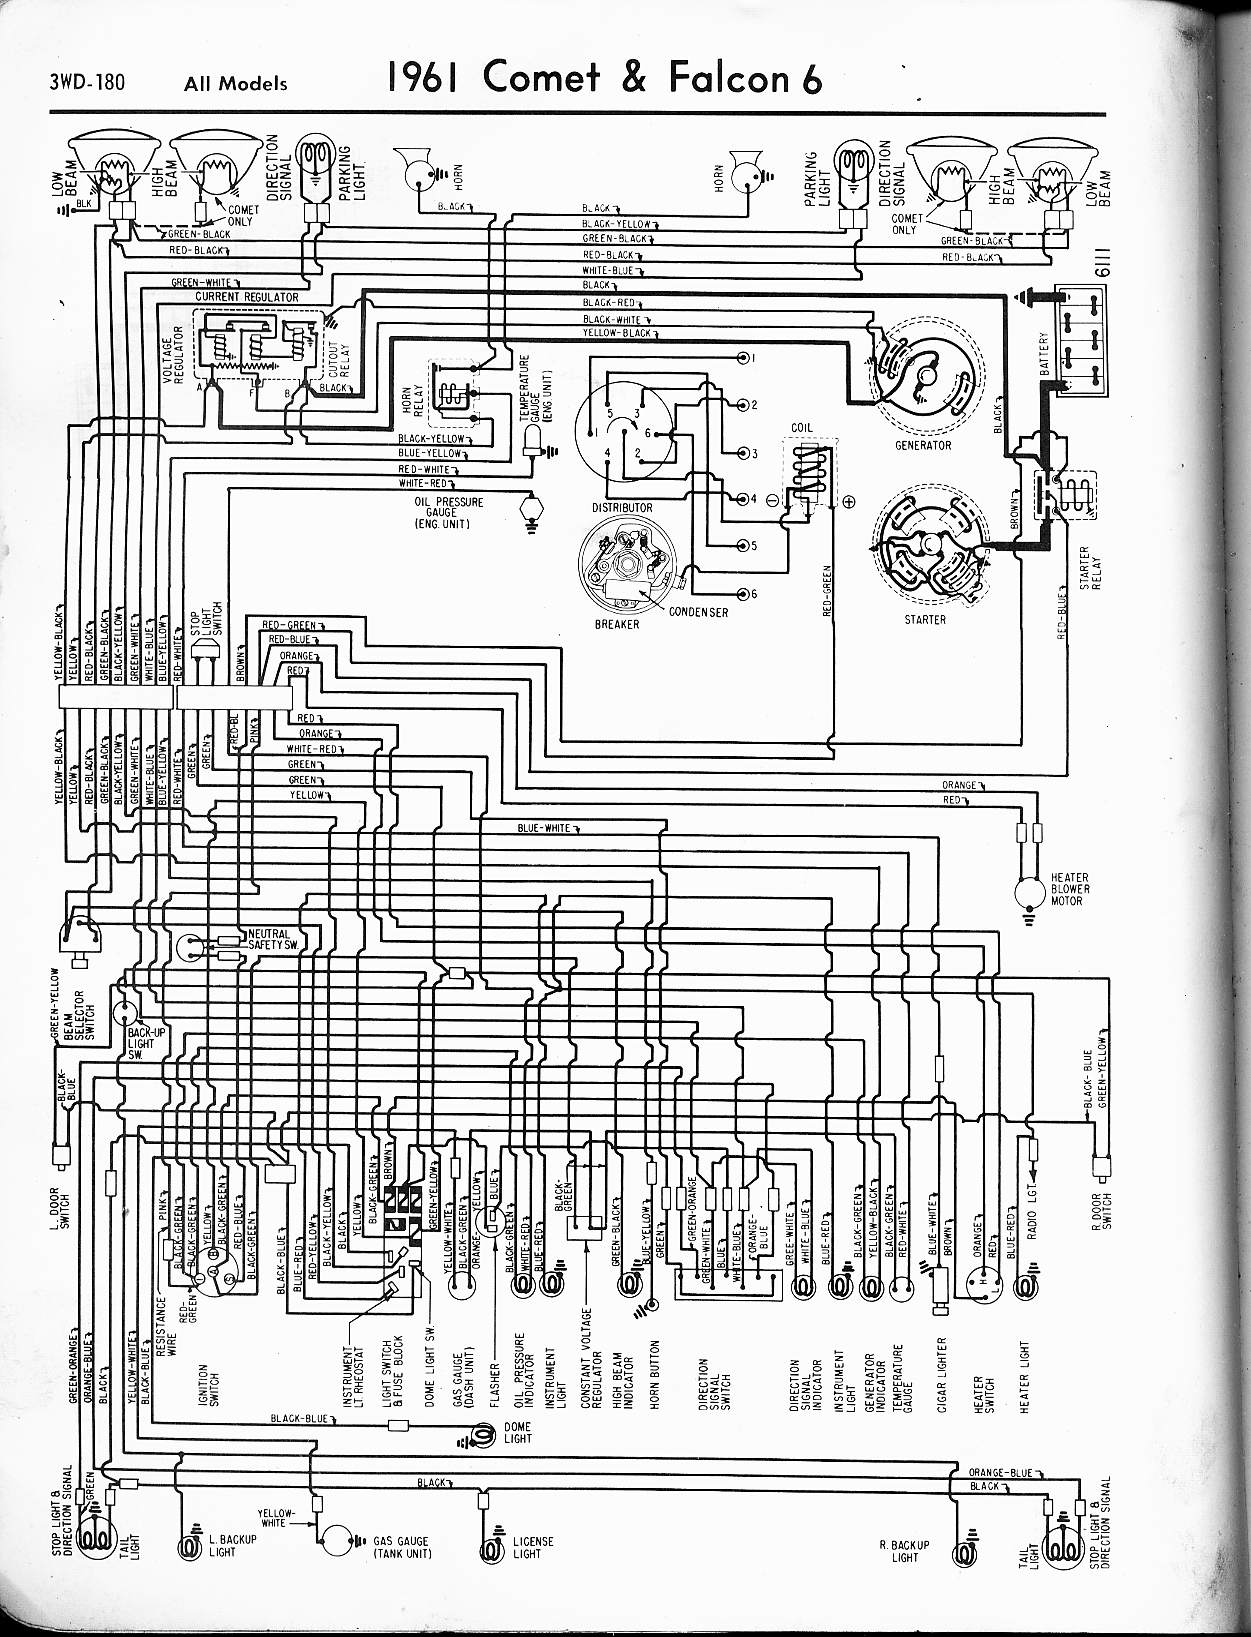 MWire5765 180 au falcon wiring diagram falcon guide \u2022 wiring diagrams j squared co  at sewacar.co